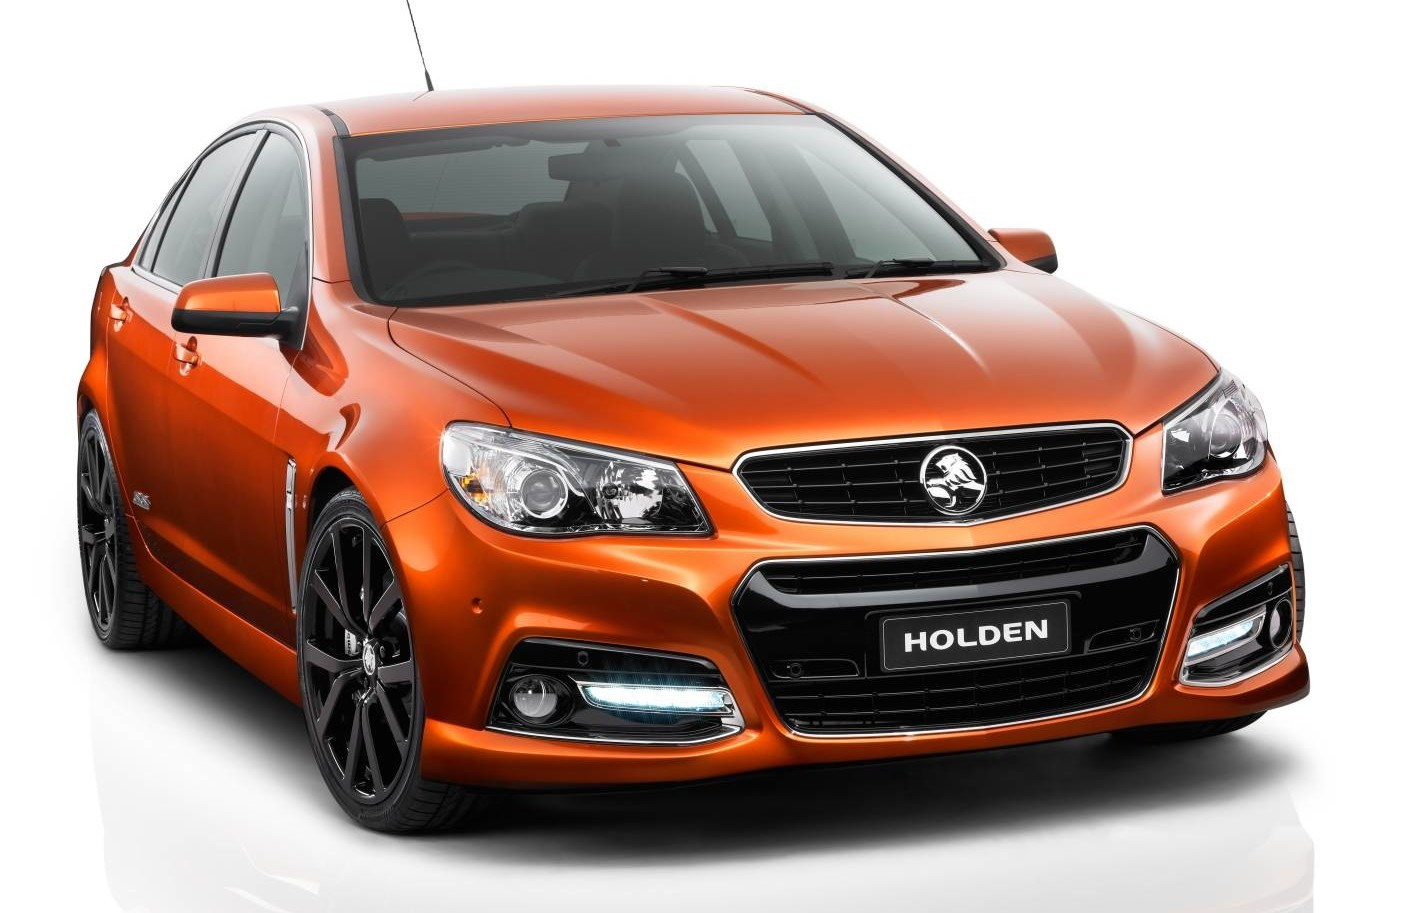 holden images #7